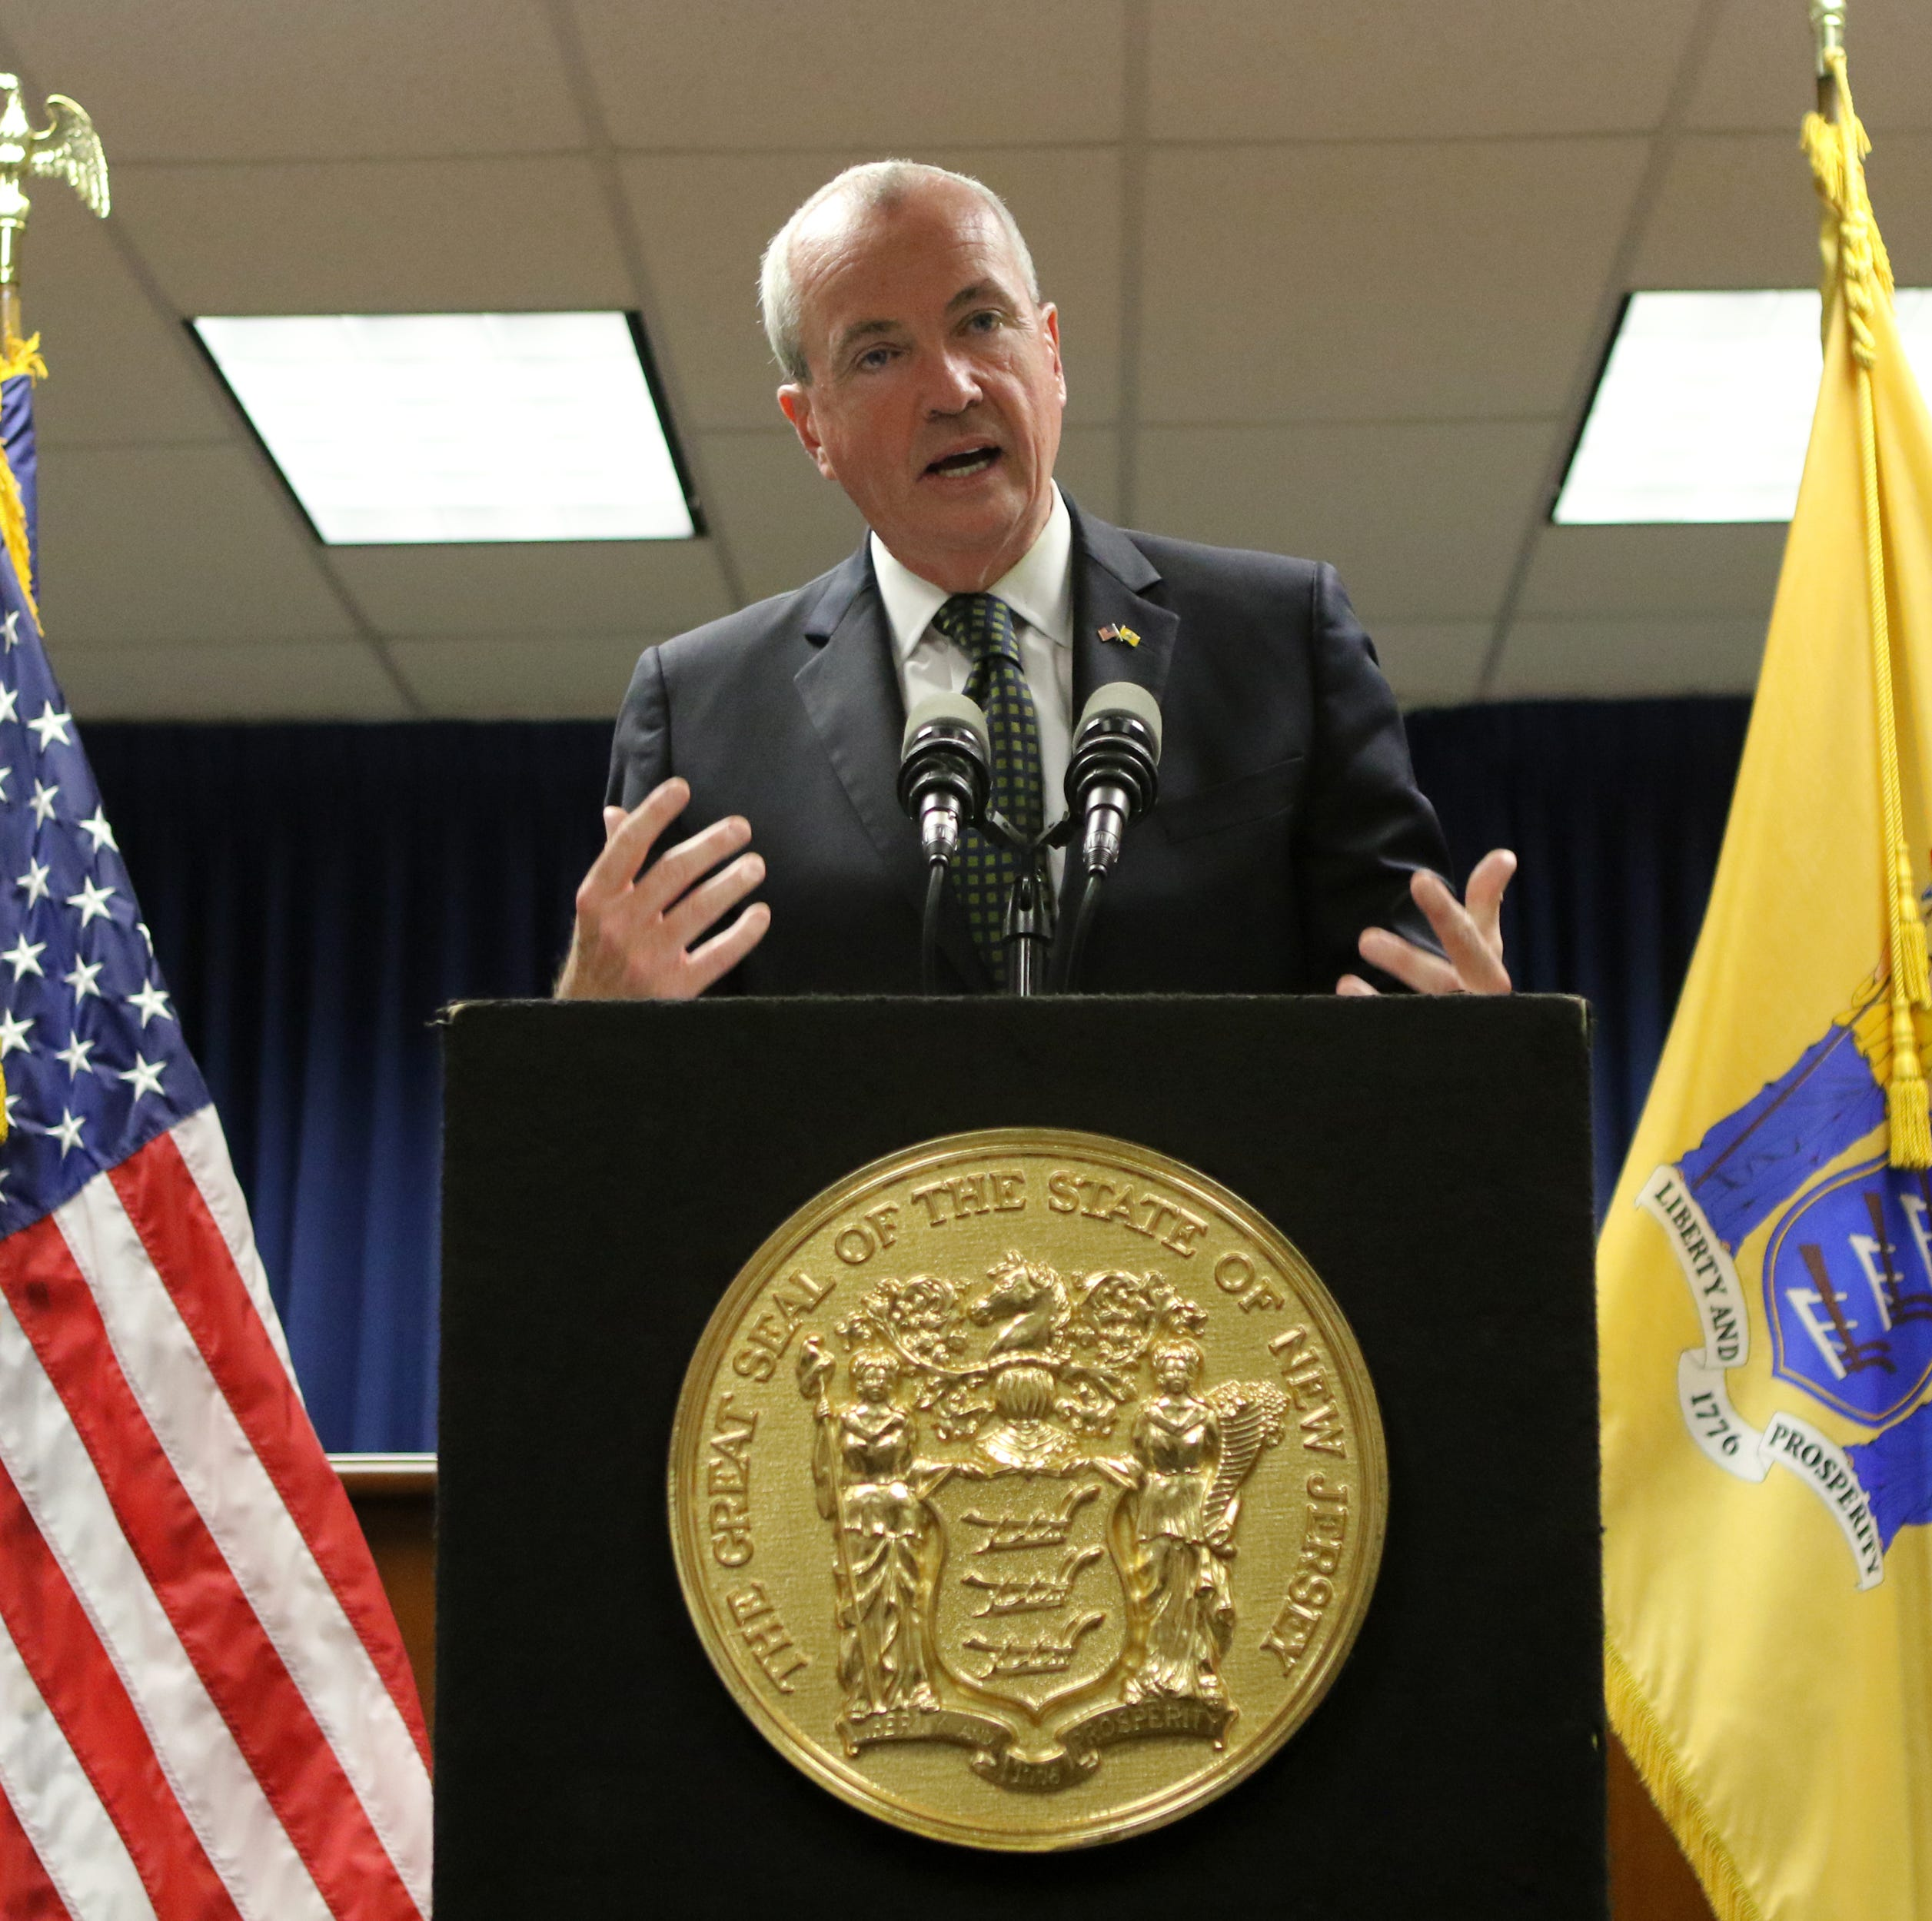 NJ Legislature plans investigation into Murphy's handling of sexual assault allegations